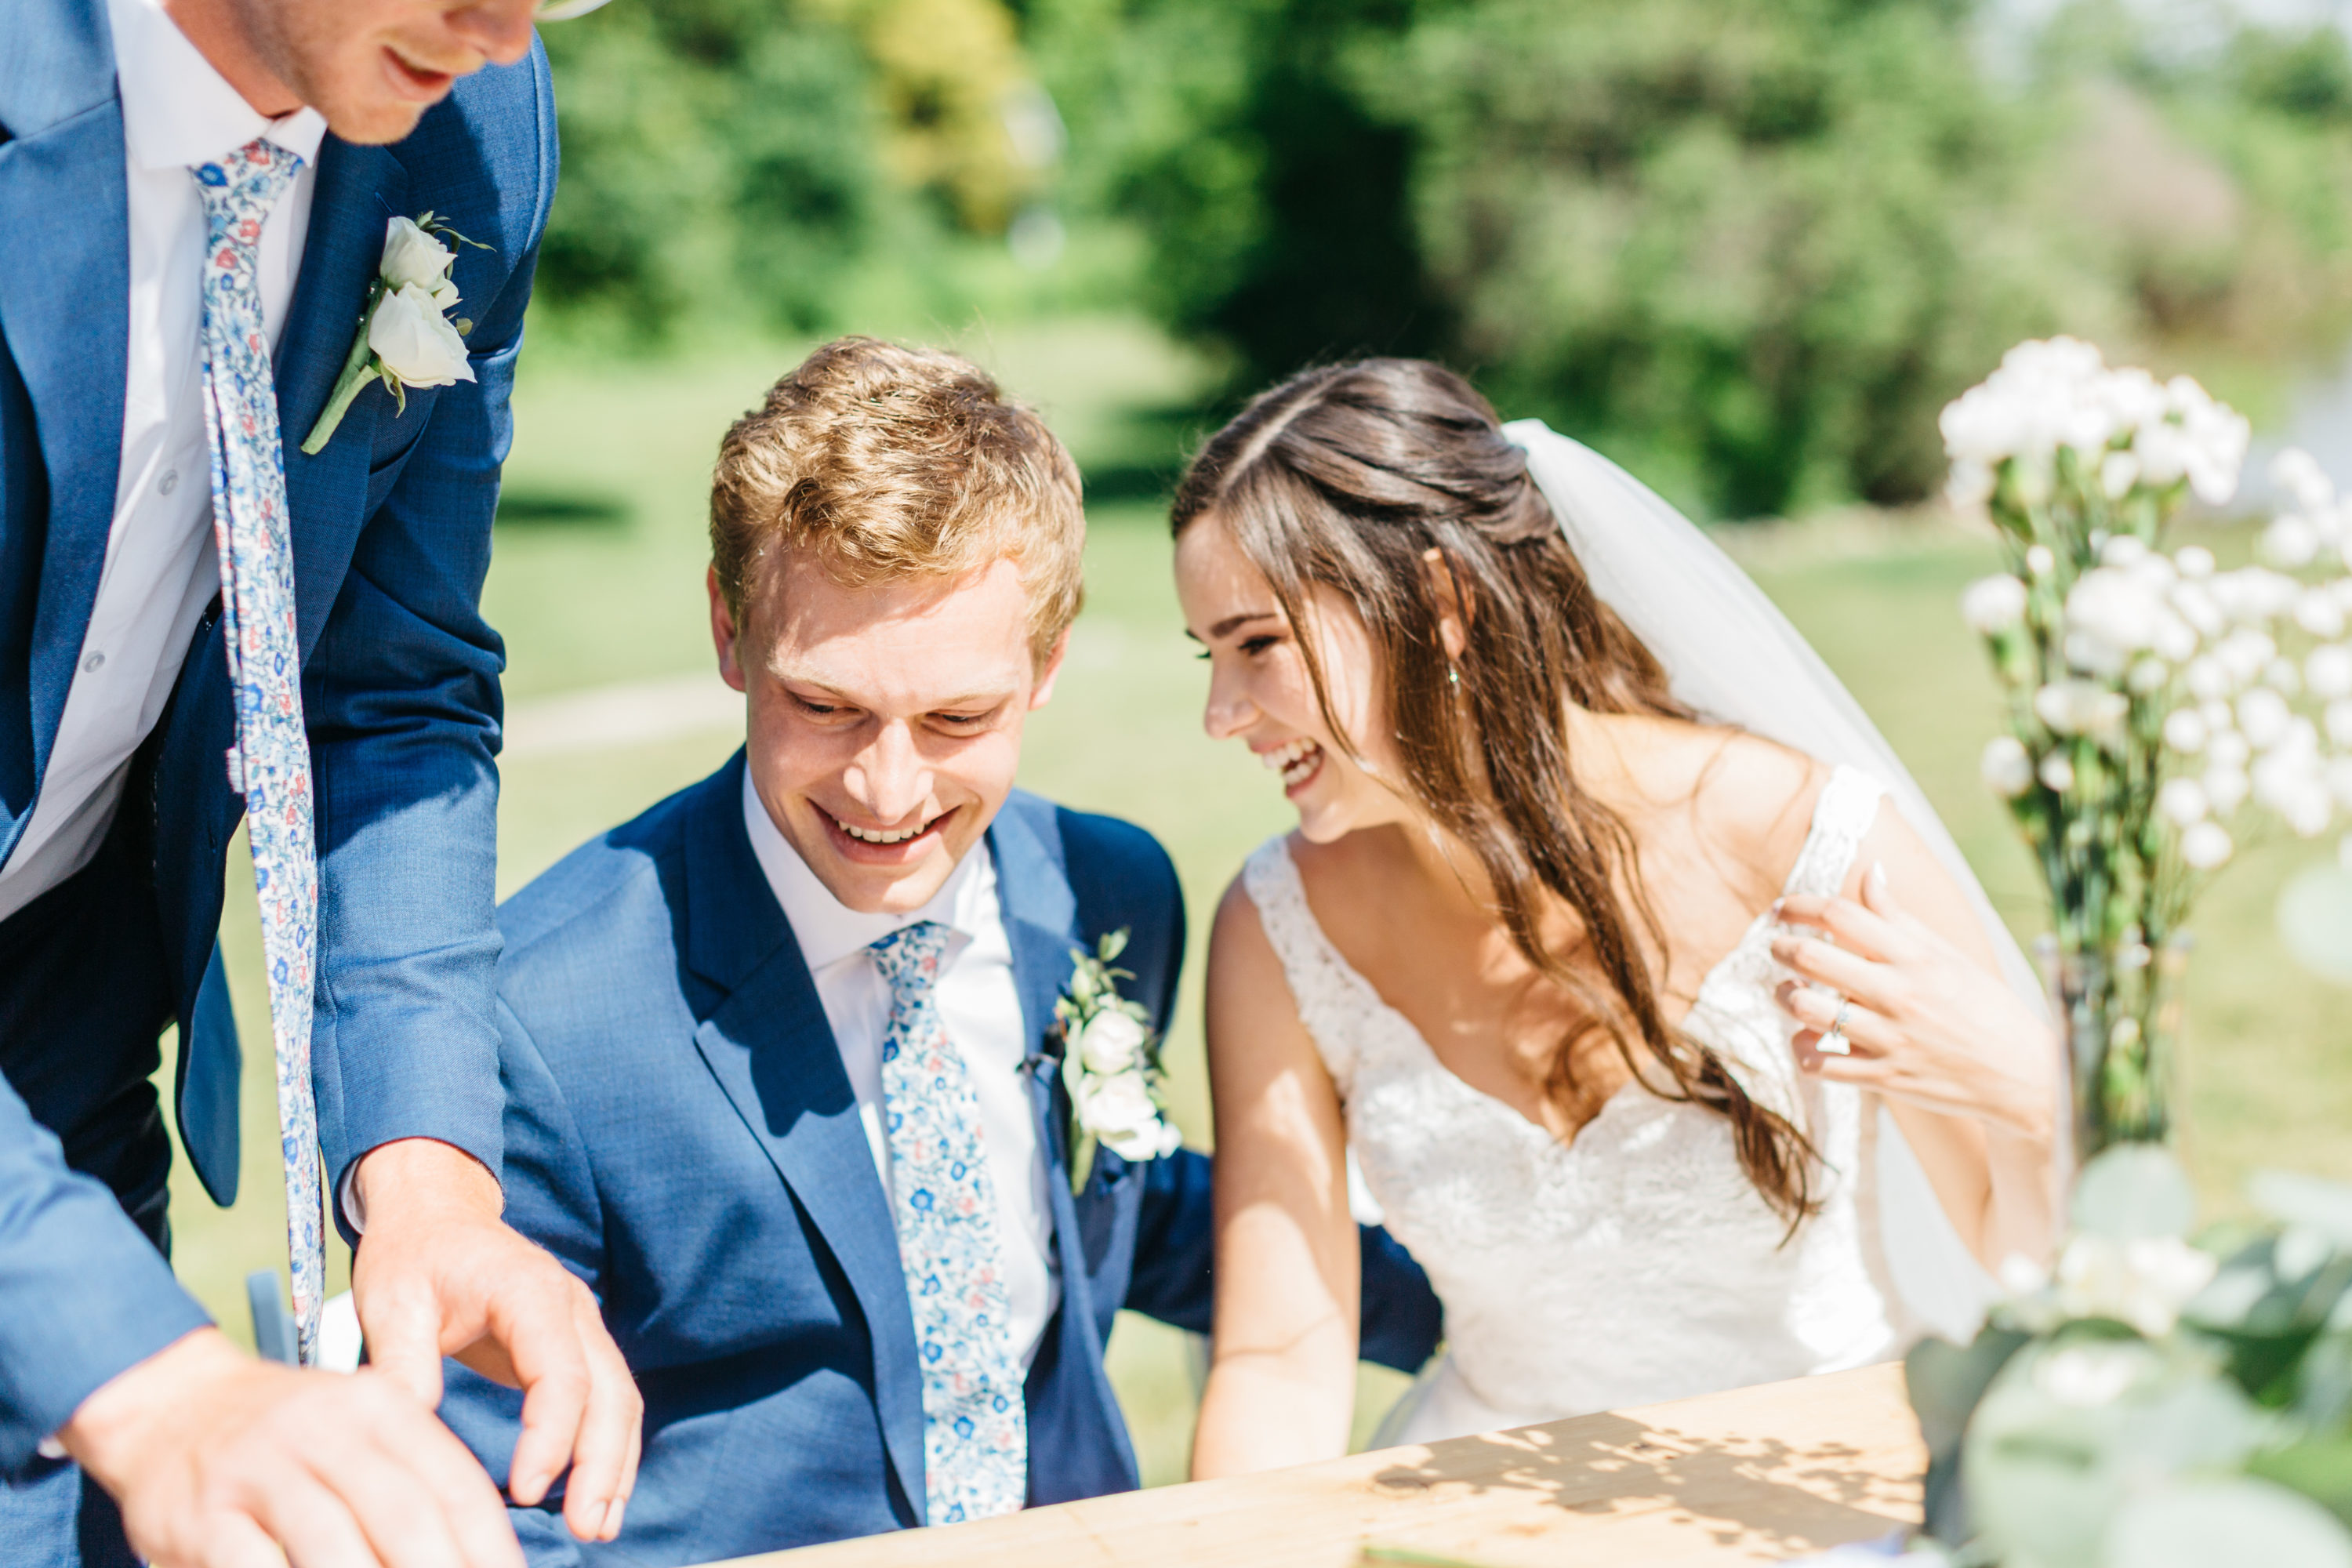 Bride laughing with groom as he signs marriage license